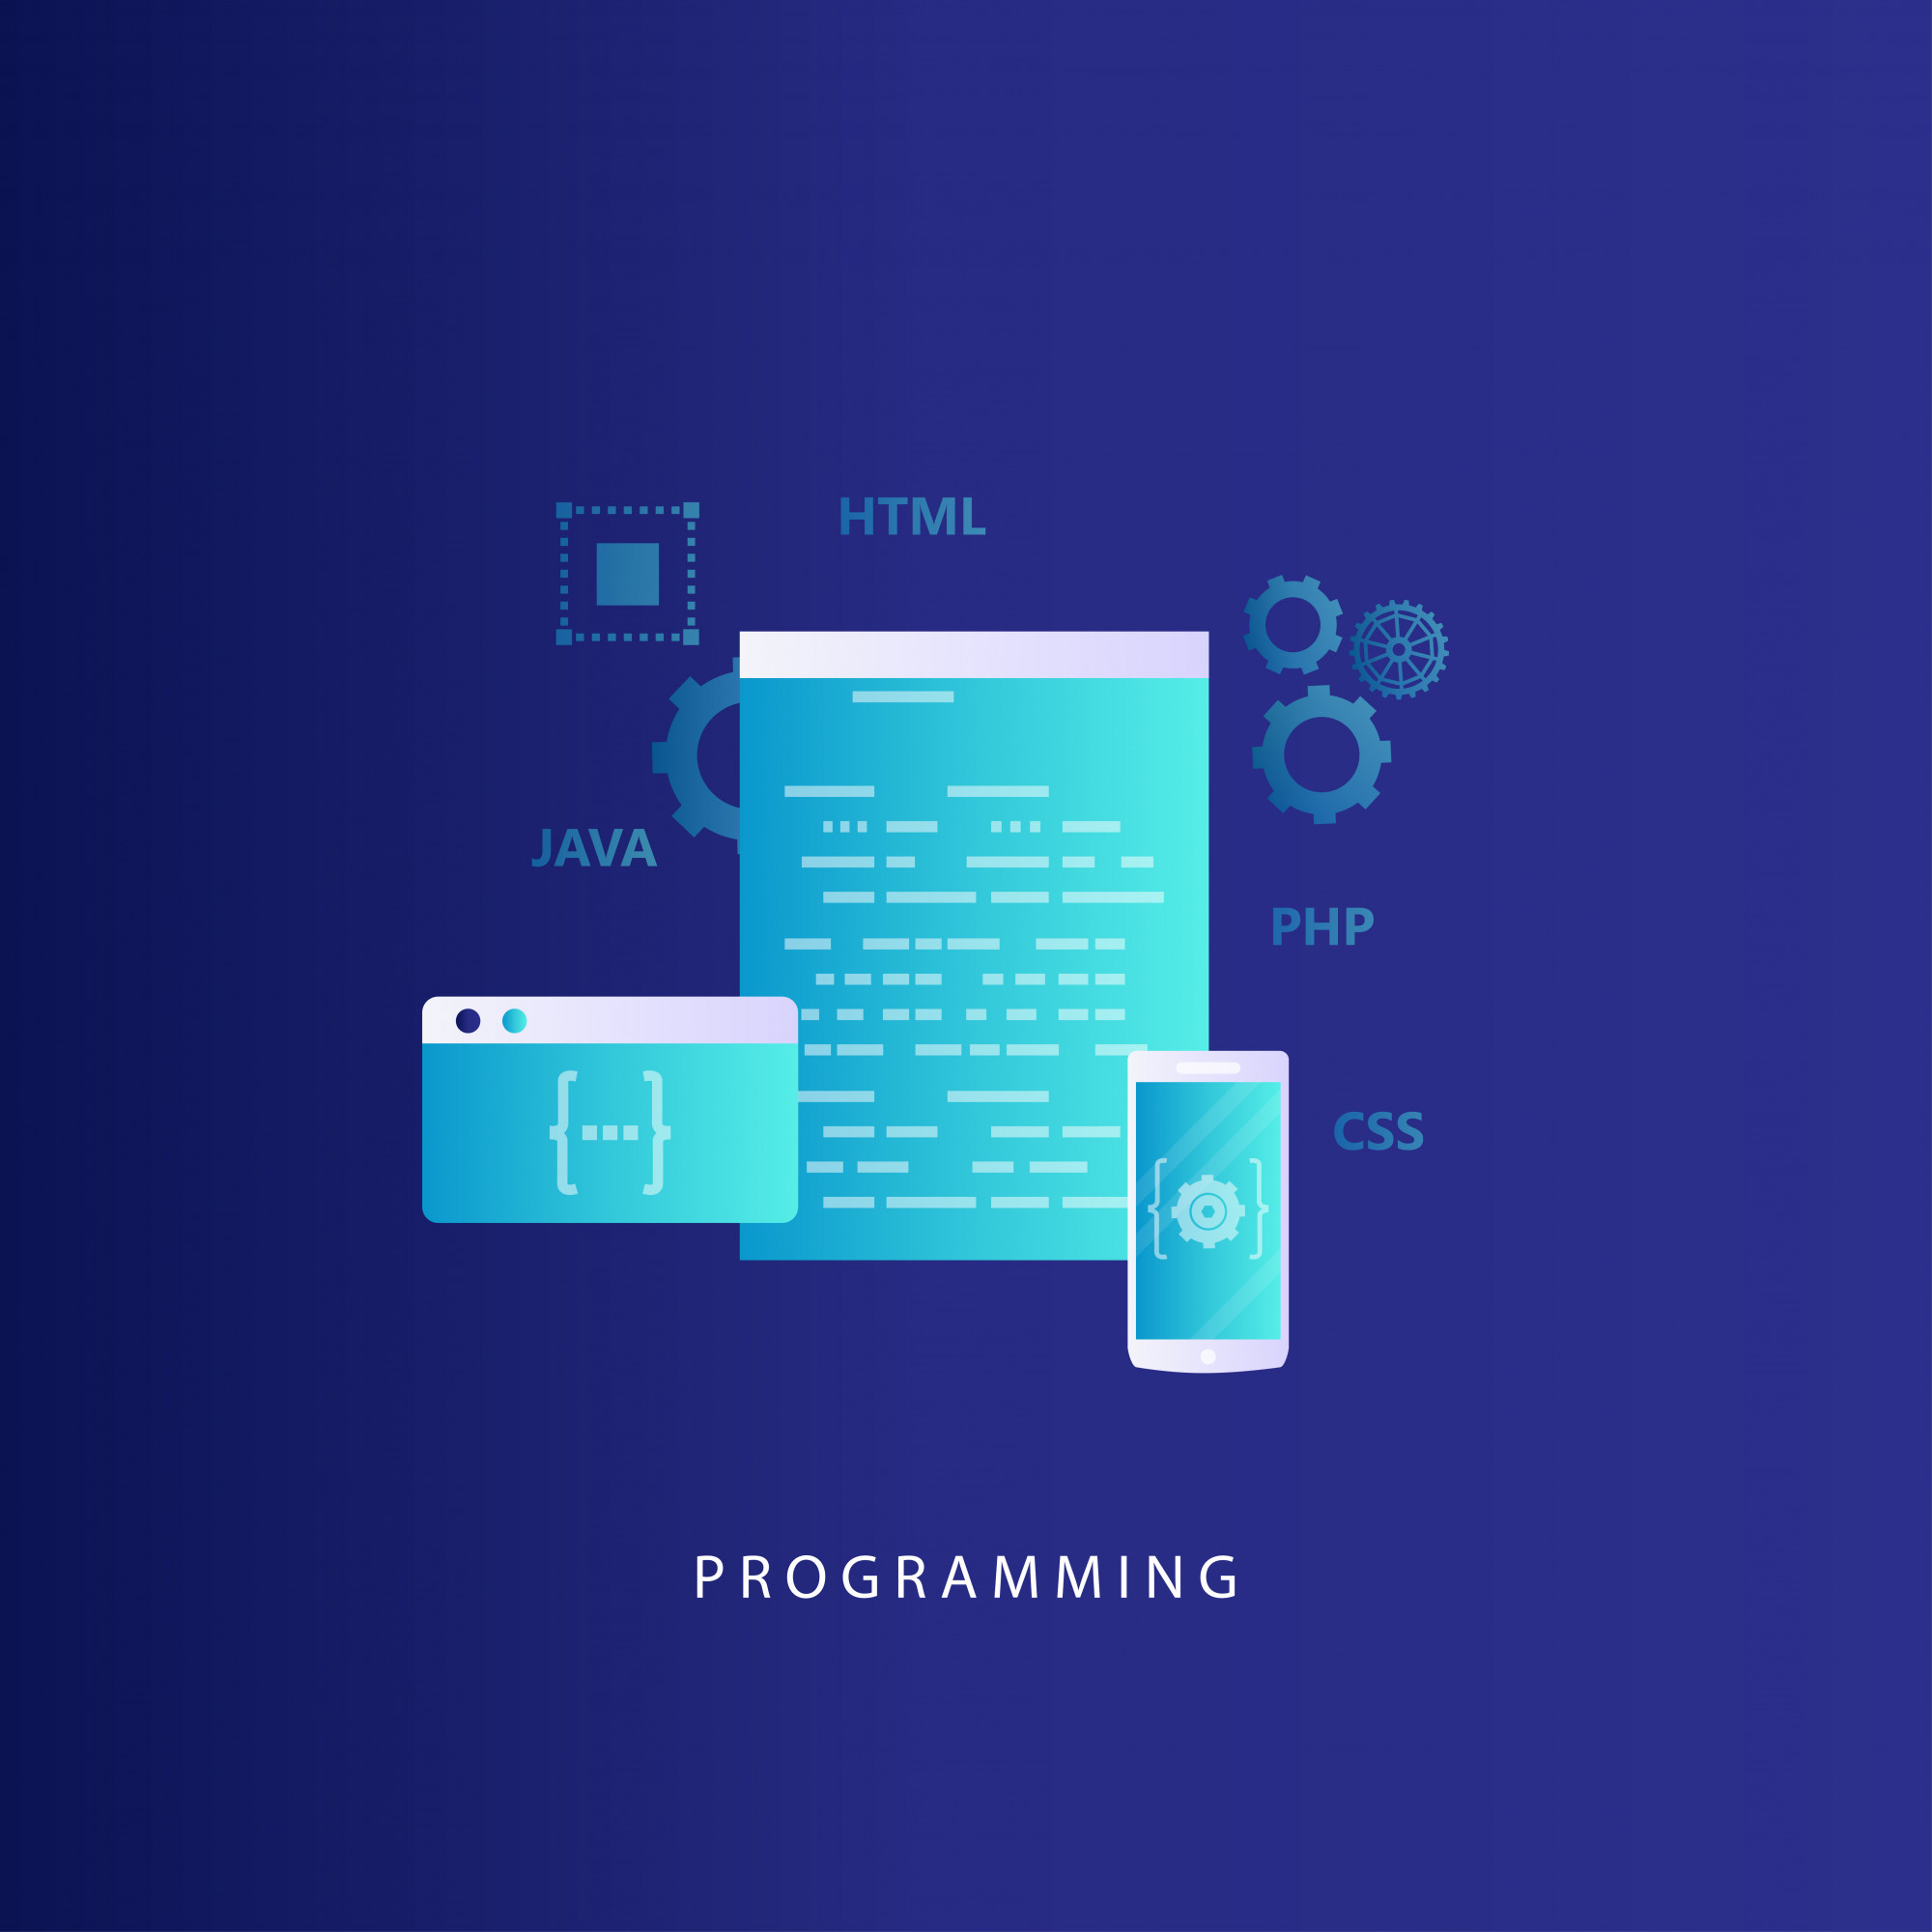 Coding, programming, website and application development